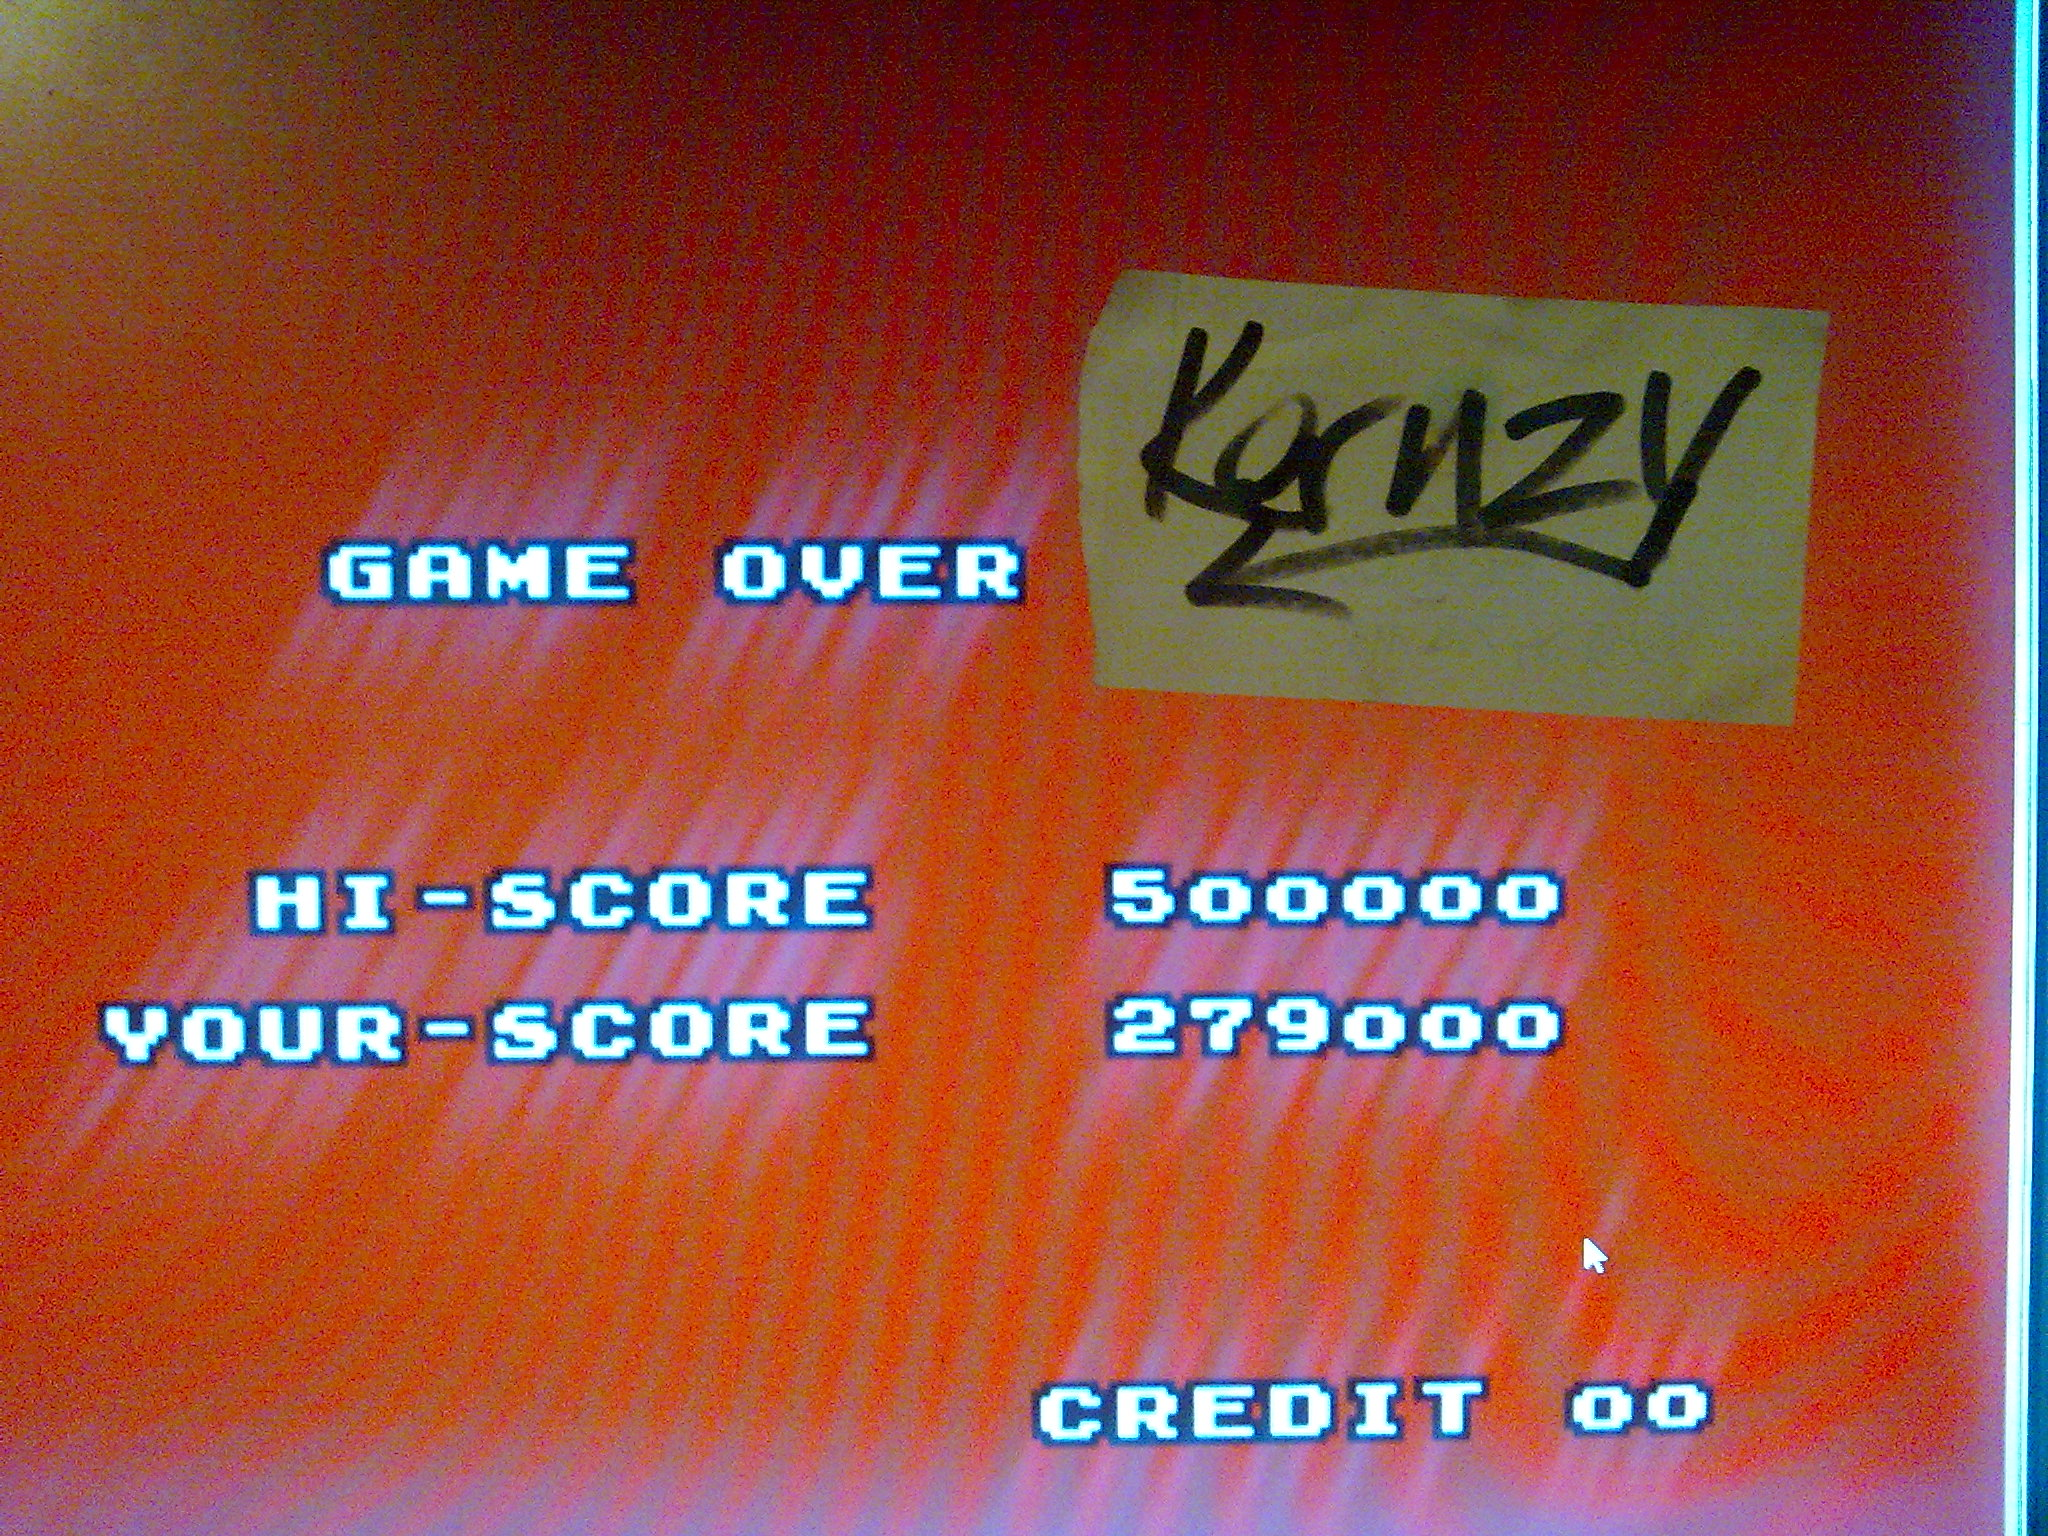 kernzy: Rabio Lepus Special (TurboGrafx-16/PC Engine Emulated) 279,000 points on 2014-10-12 18:30:21